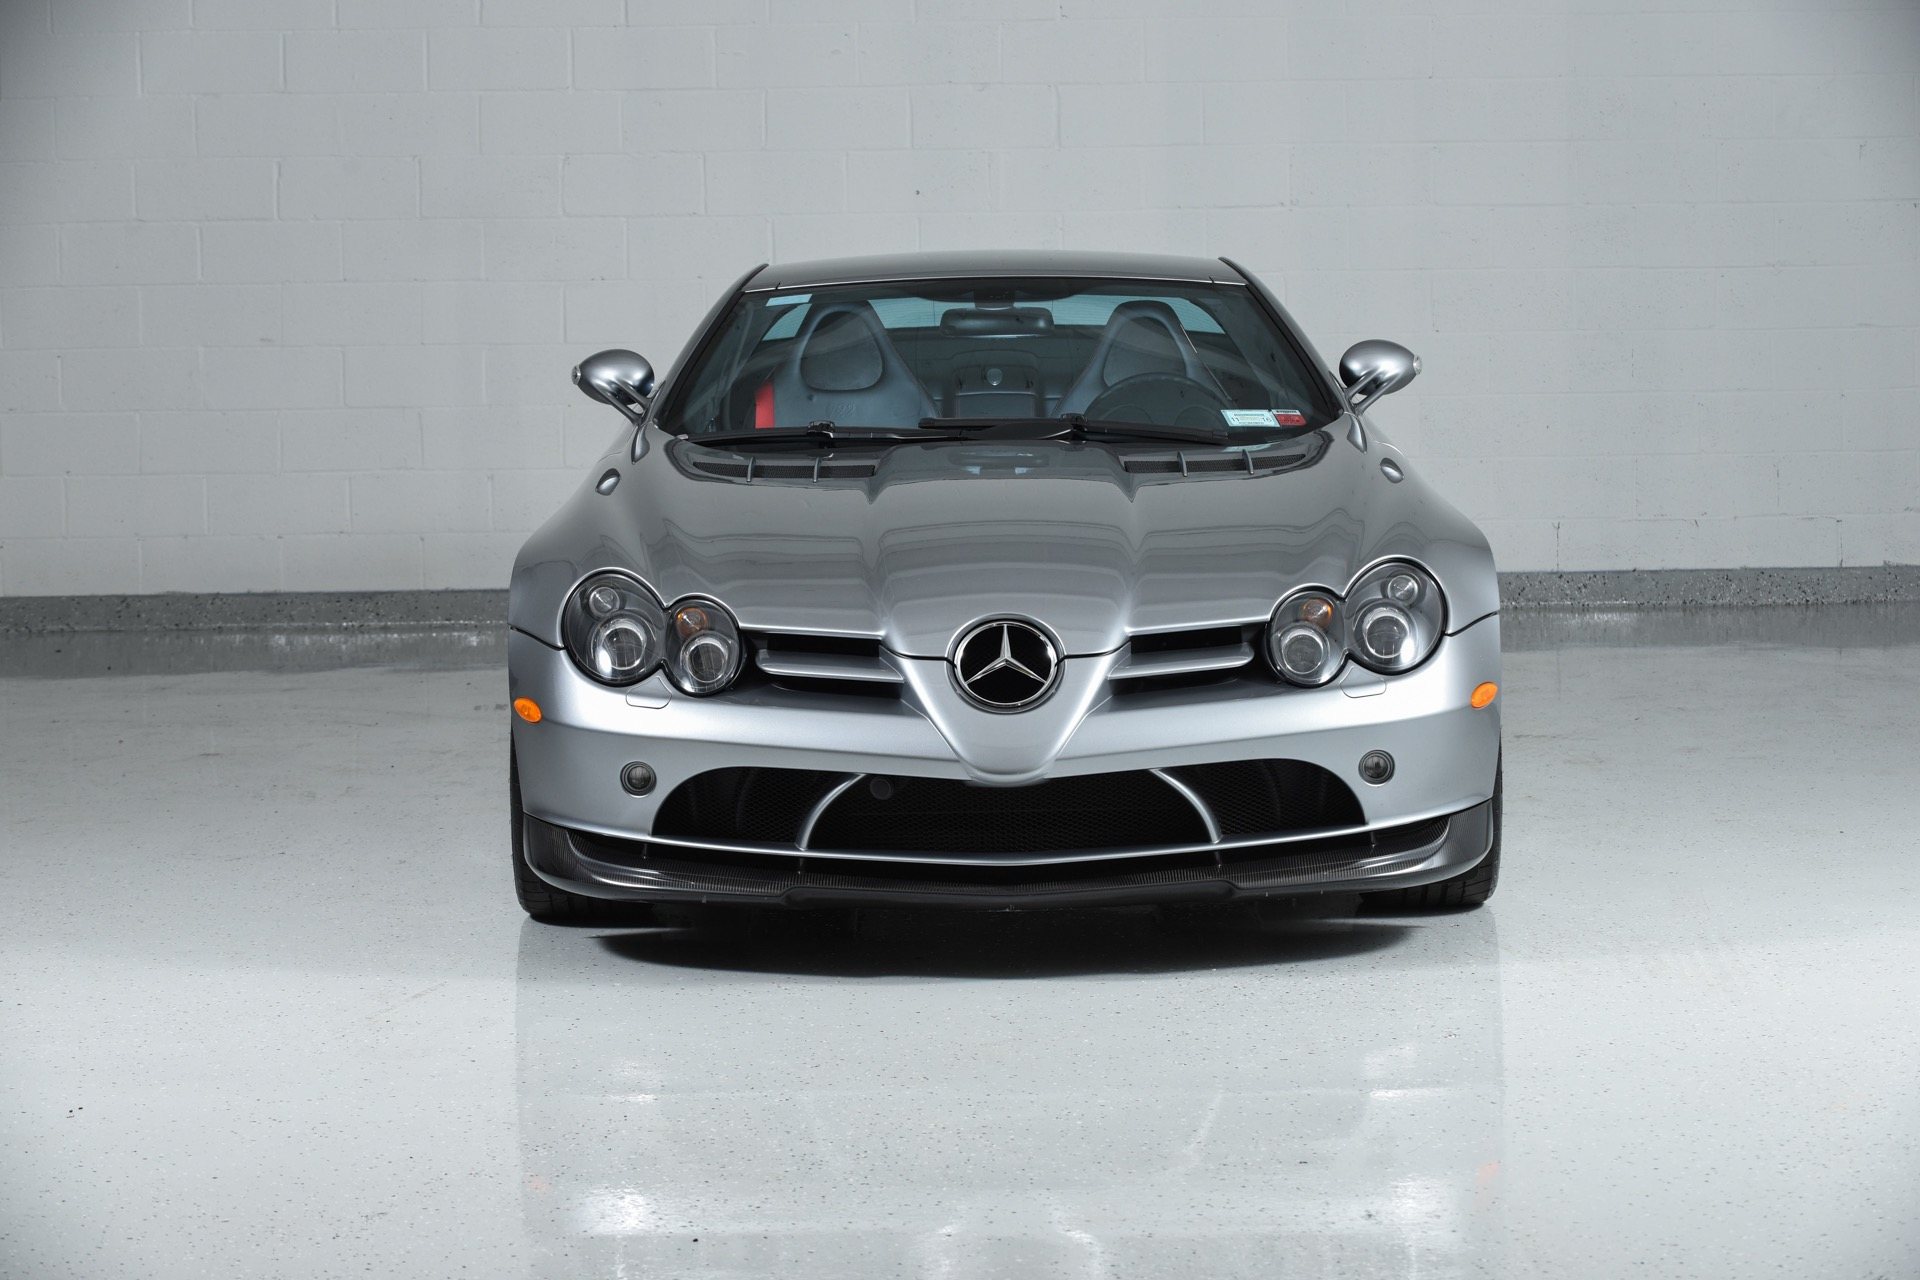 2007 mercedes benz slr mclaren 722 slr mclaren 722 edition for Mercedes benz address